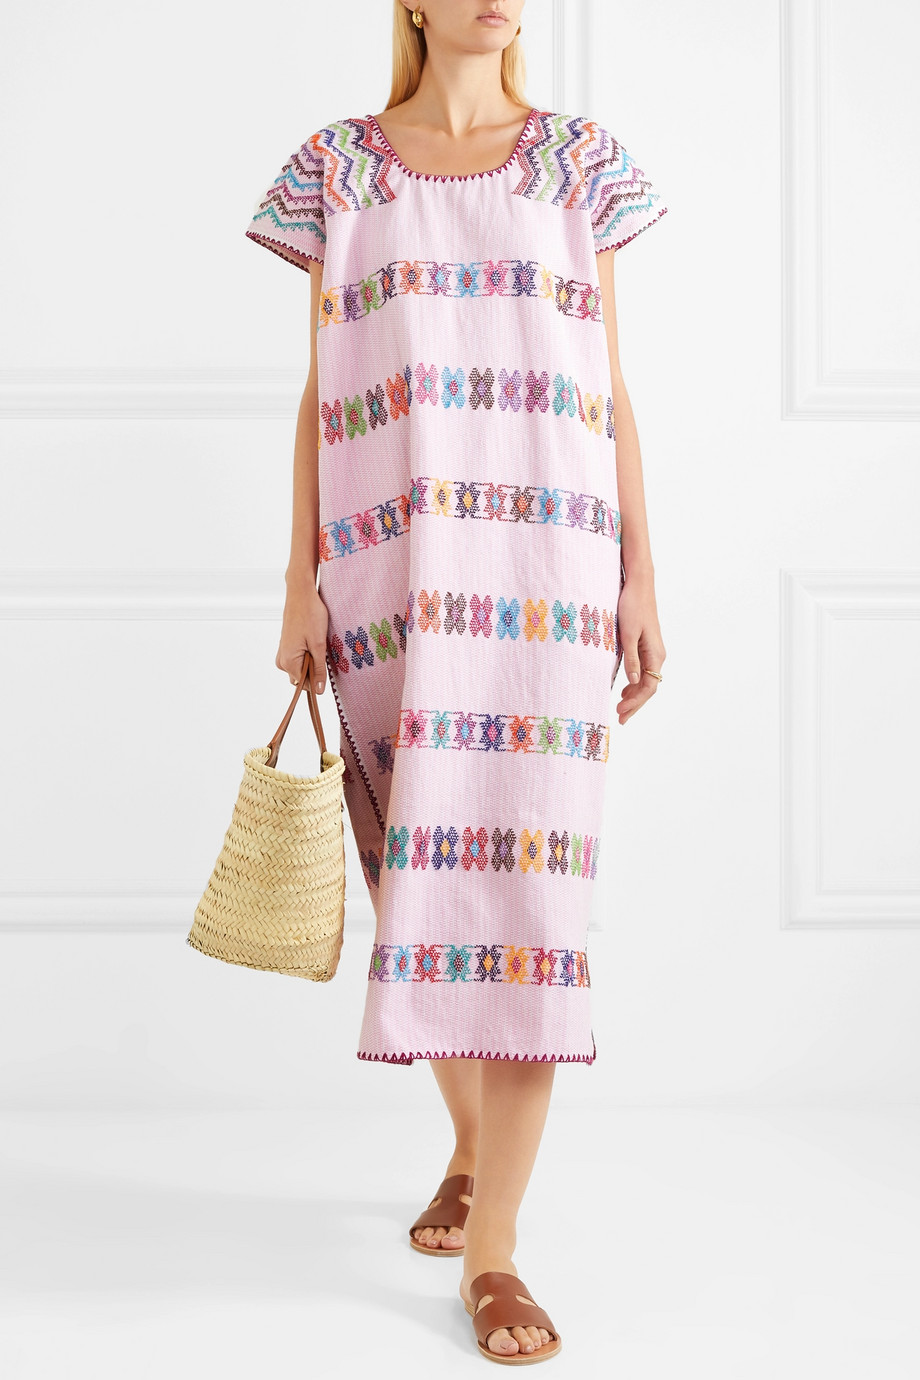 Pippa Holt Pink Embroidered Caftan Mexican Dress